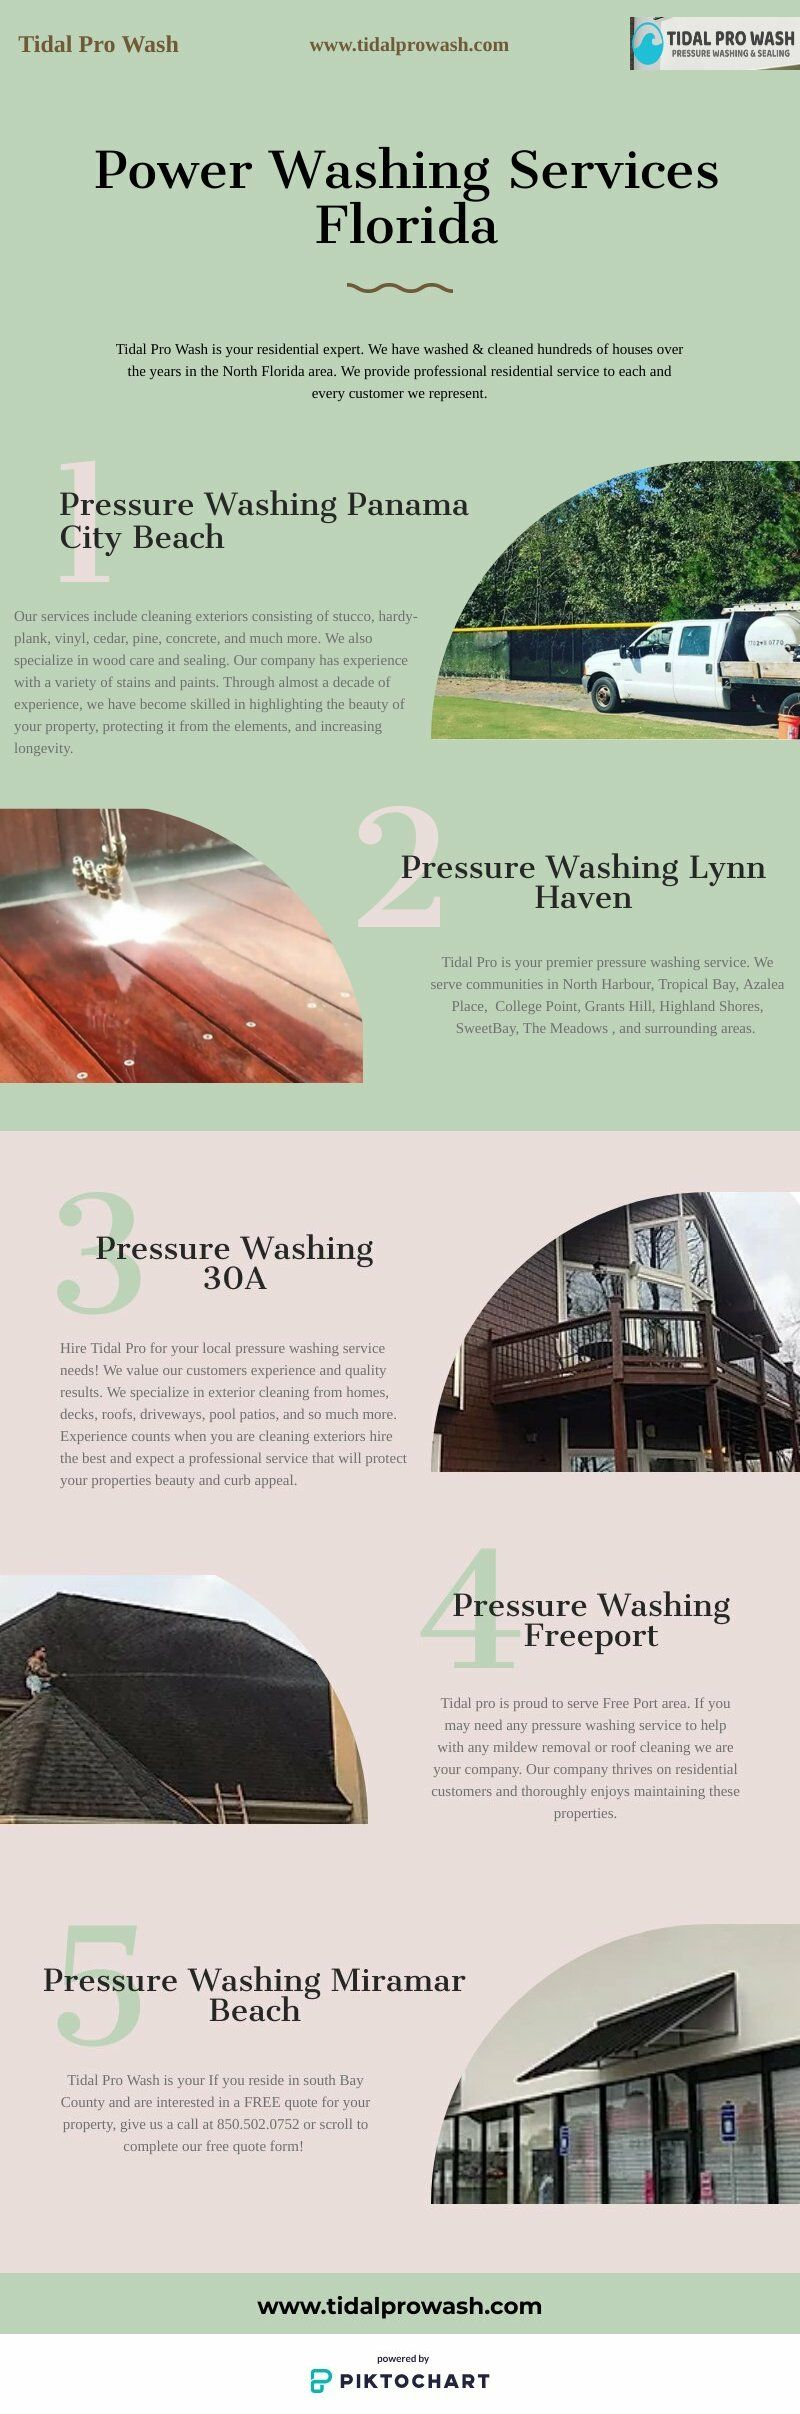 Power Washing Services Florida In 2020 Pressure Washing Services Pressure Washing Power Washing Services